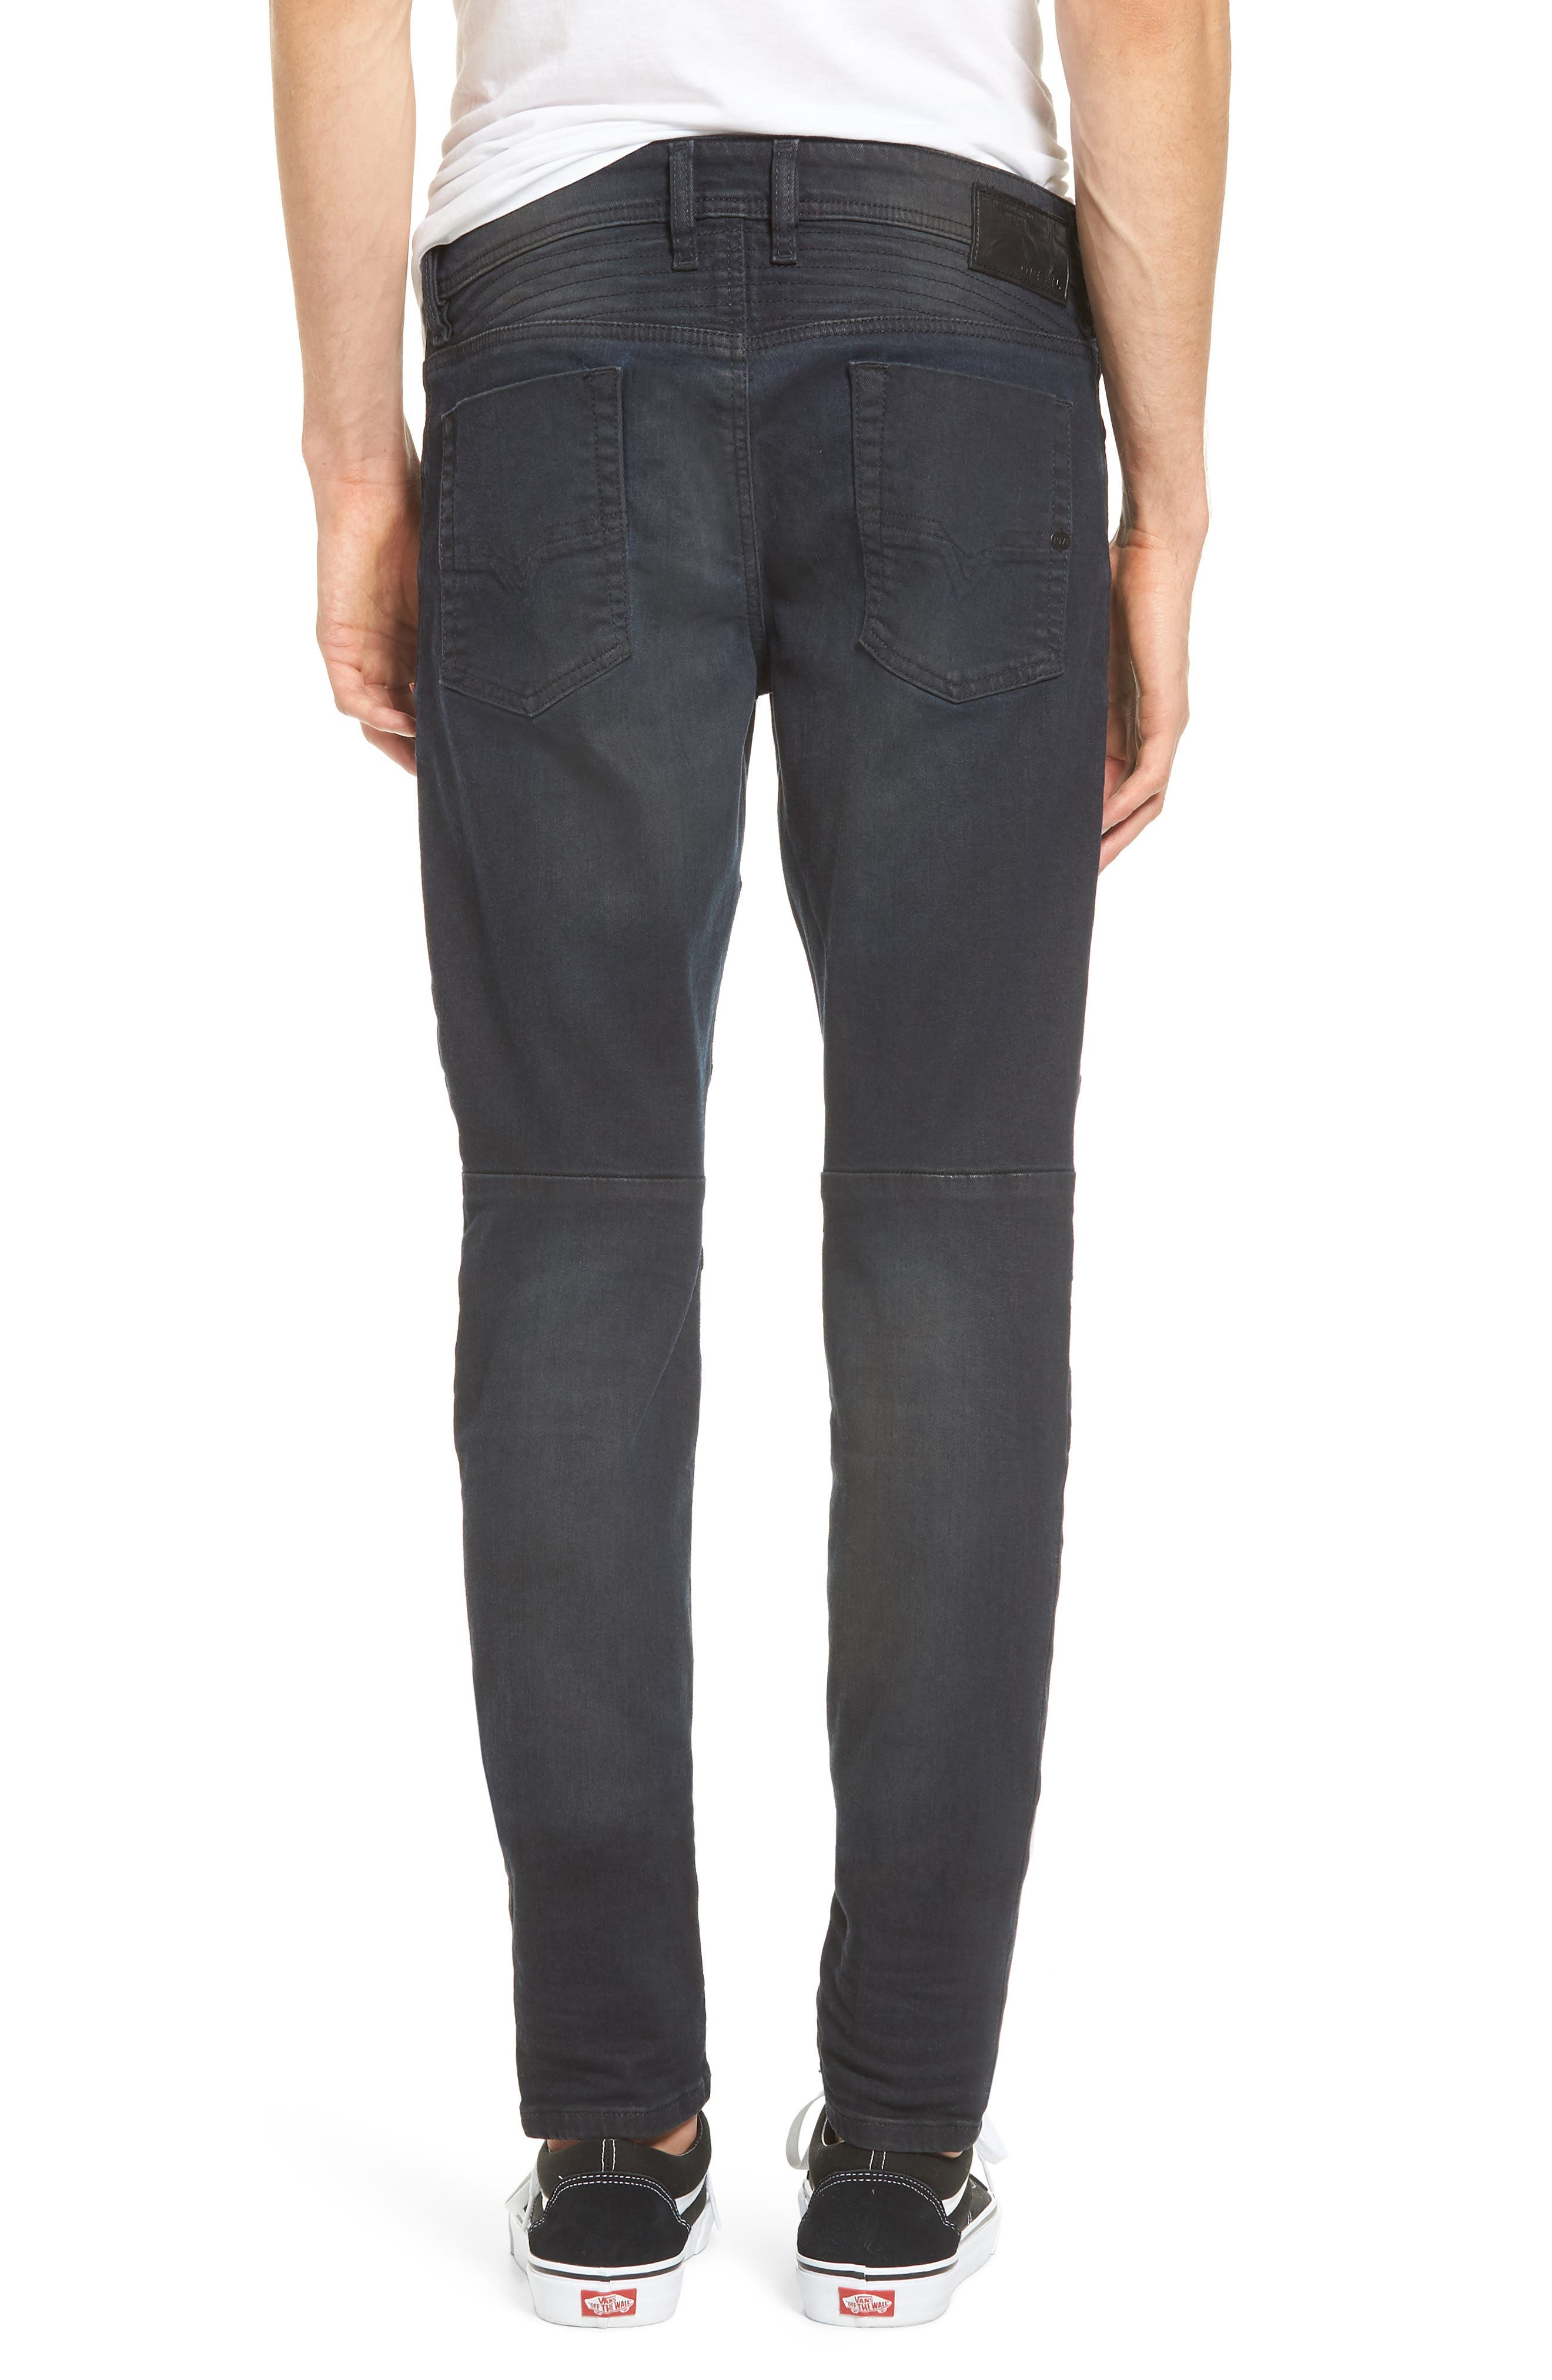 Fourk Skinny Fit Jeans,                             Alternate thumbnail 2, color,